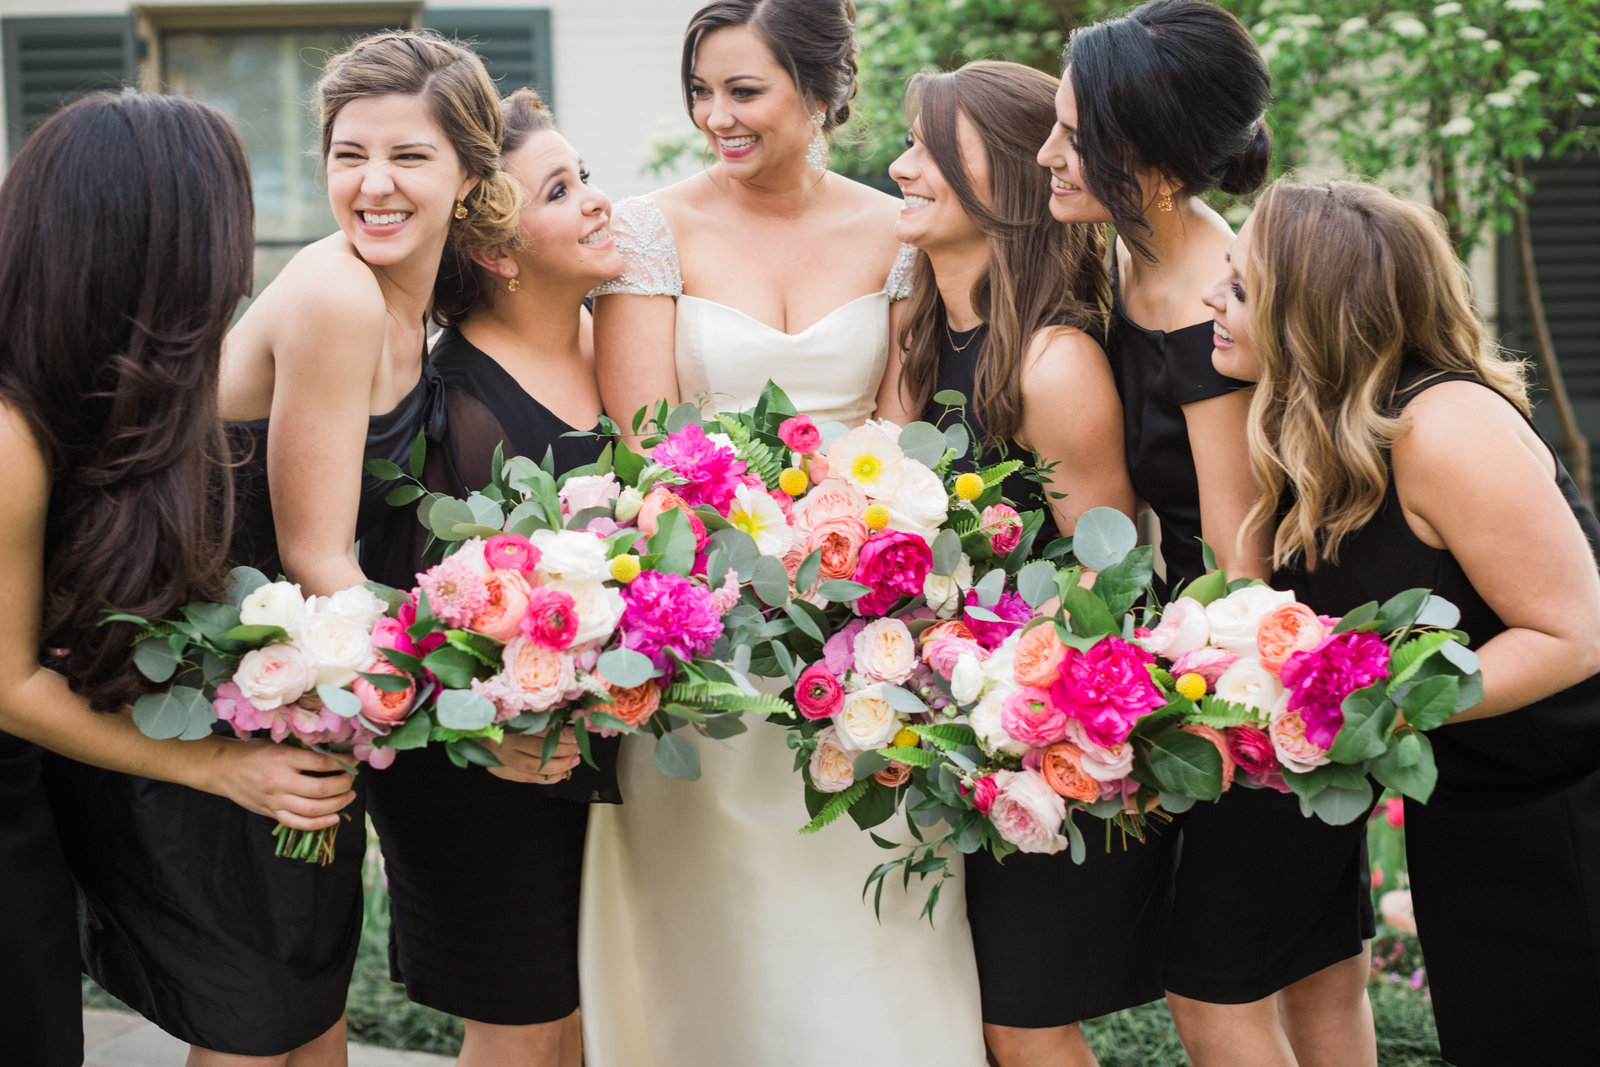 the bride and her bridal party dressed in black with pink florals